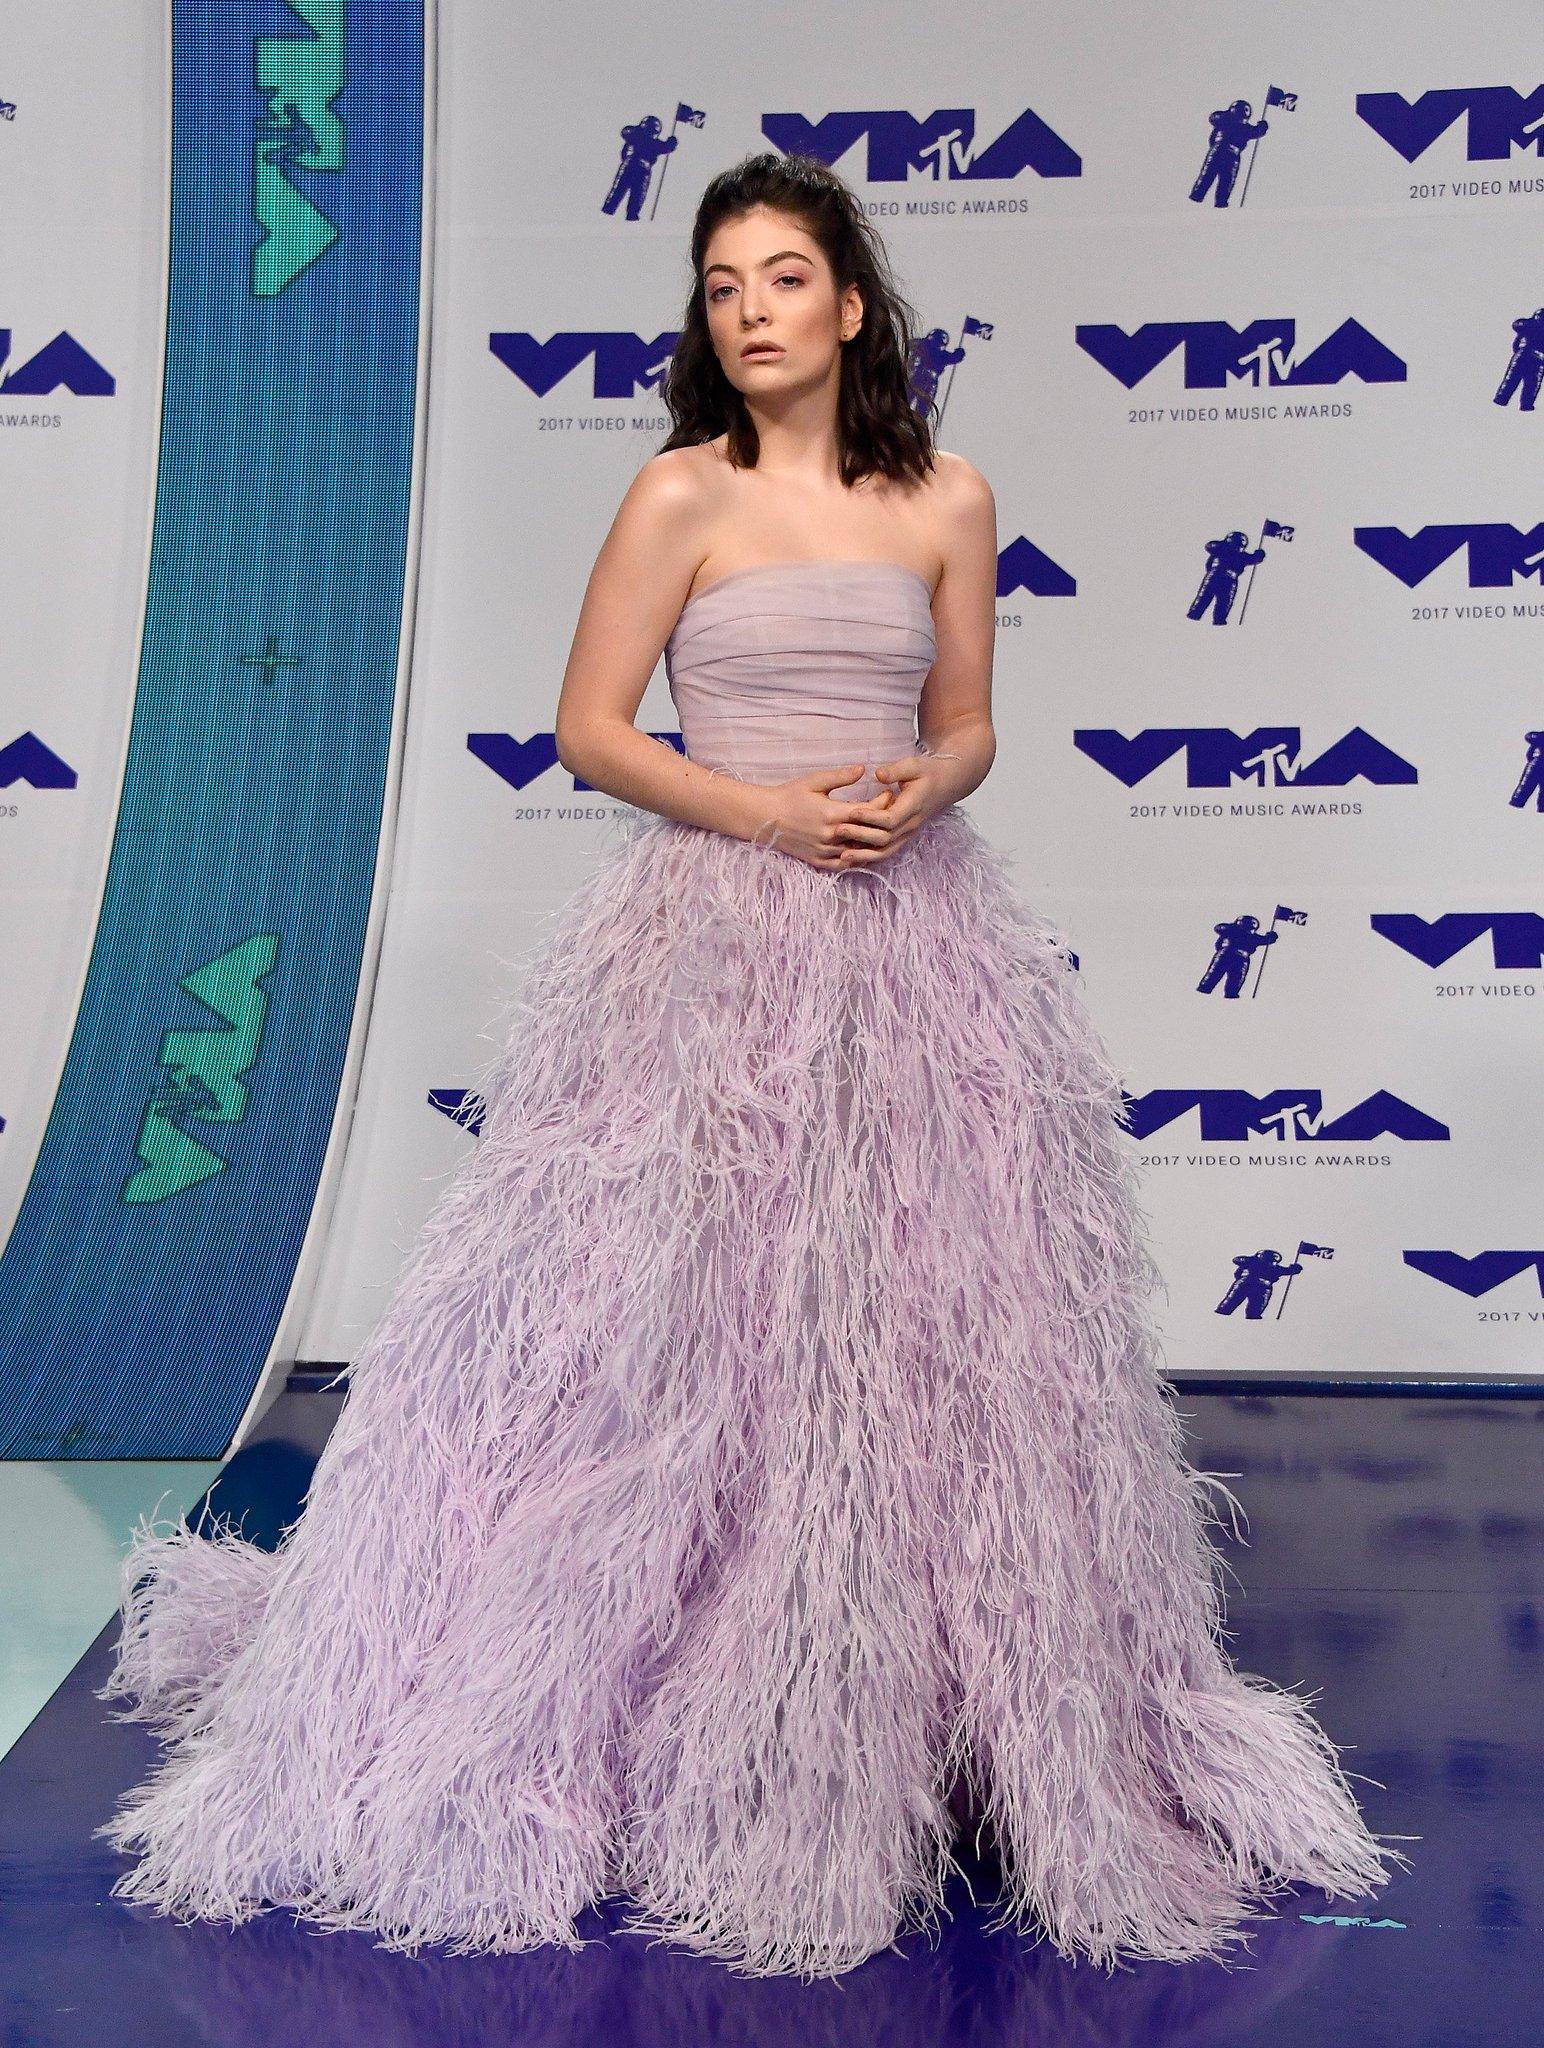 �� @Lorde has arrived at the #VMAs looking like an actual princess!!!! https://t.co/CGTLSIjNUy https://t.co/hQs4USjoVo